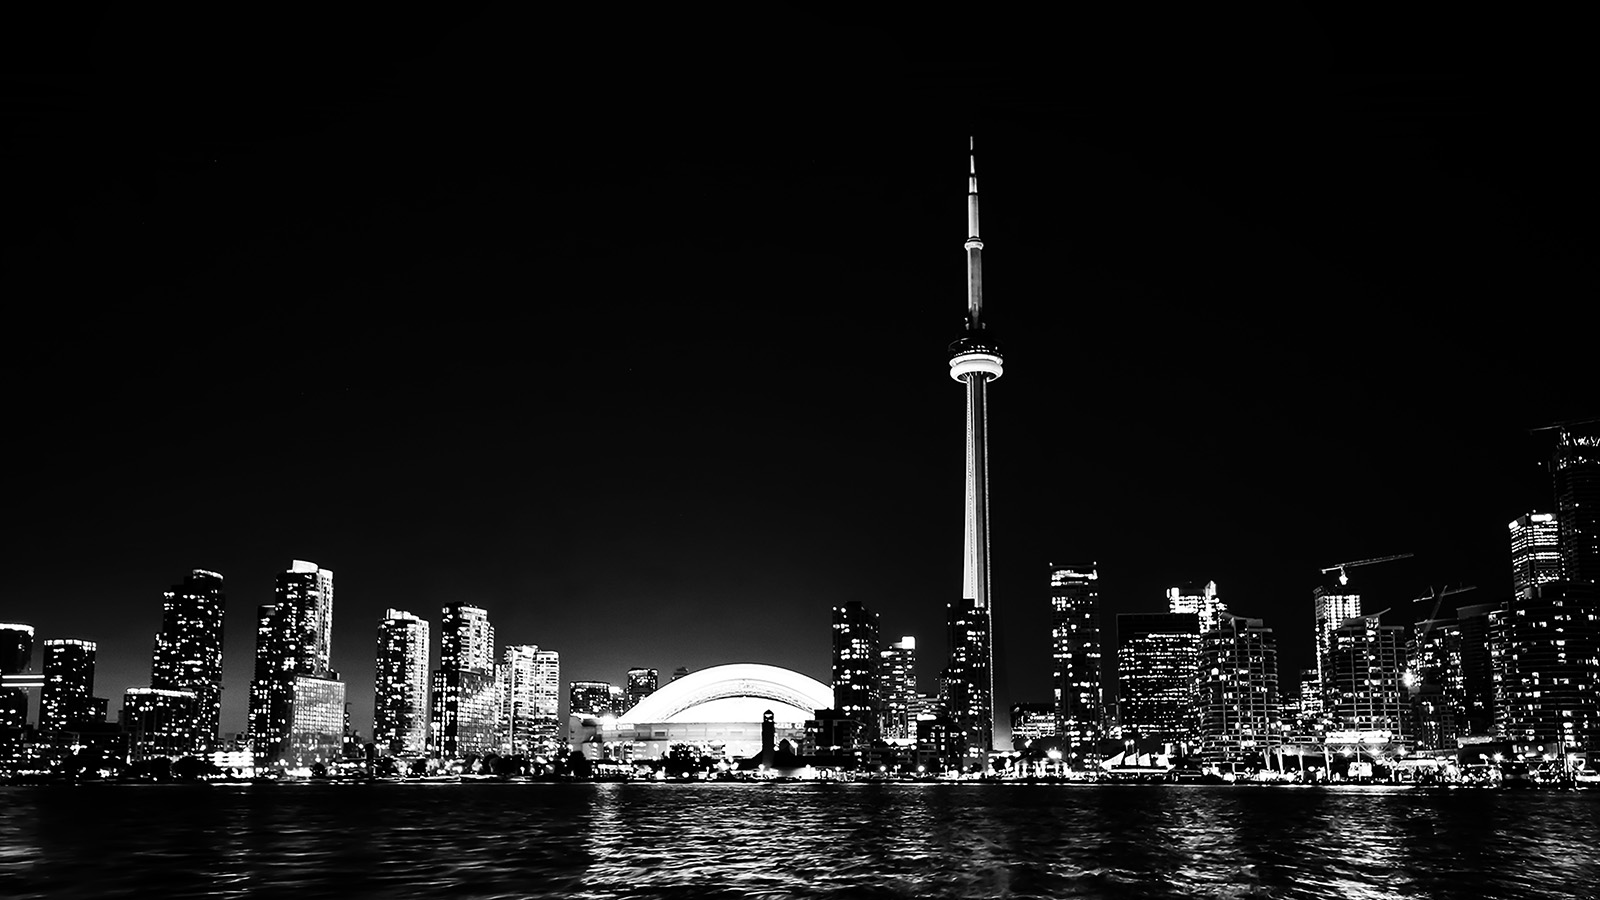 mt45torontocitynightmissingtowerdarkcityviewbw